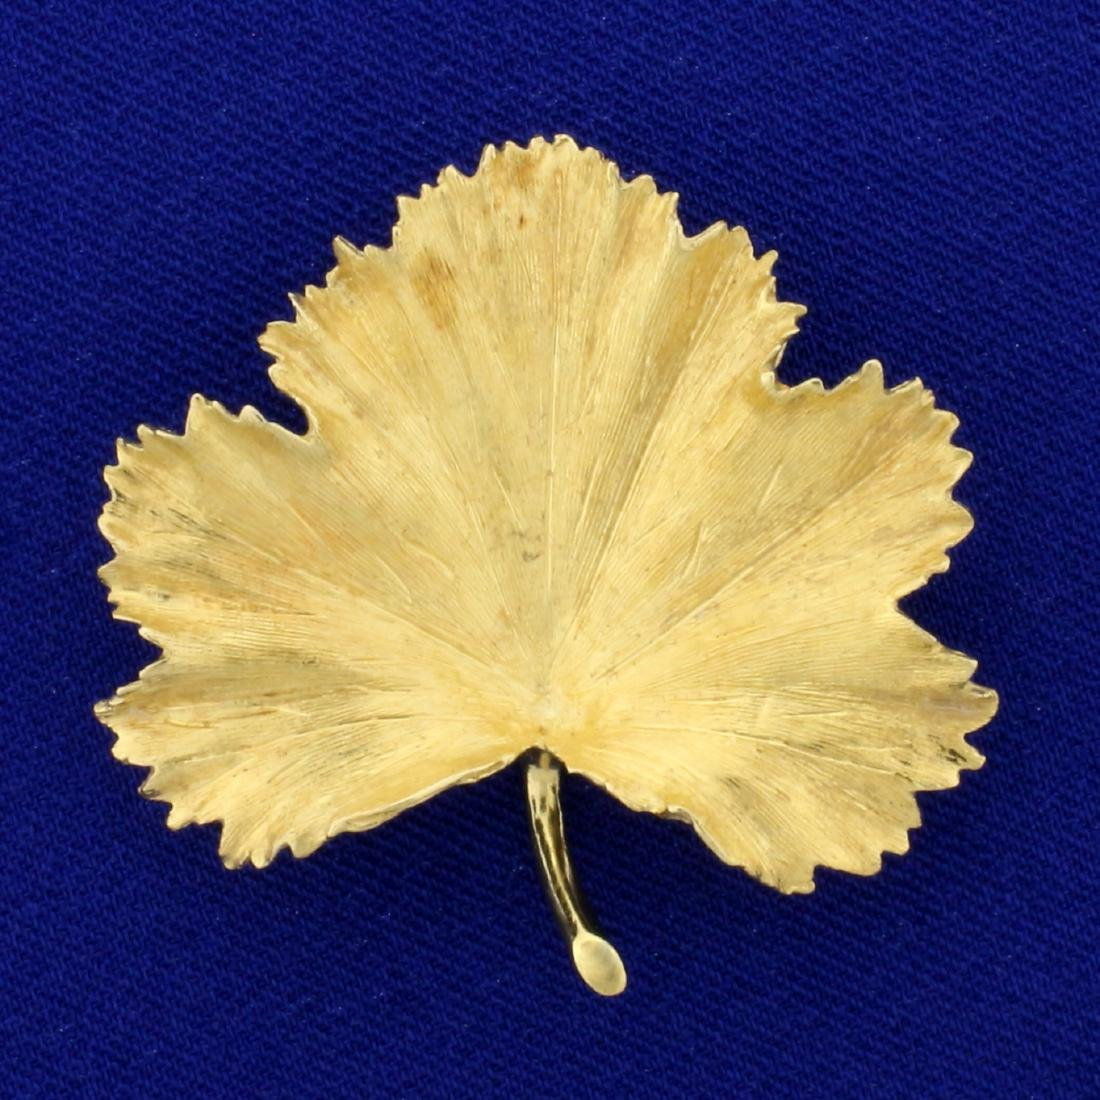 Maple Leaf Pin in 18K Yellow Gold